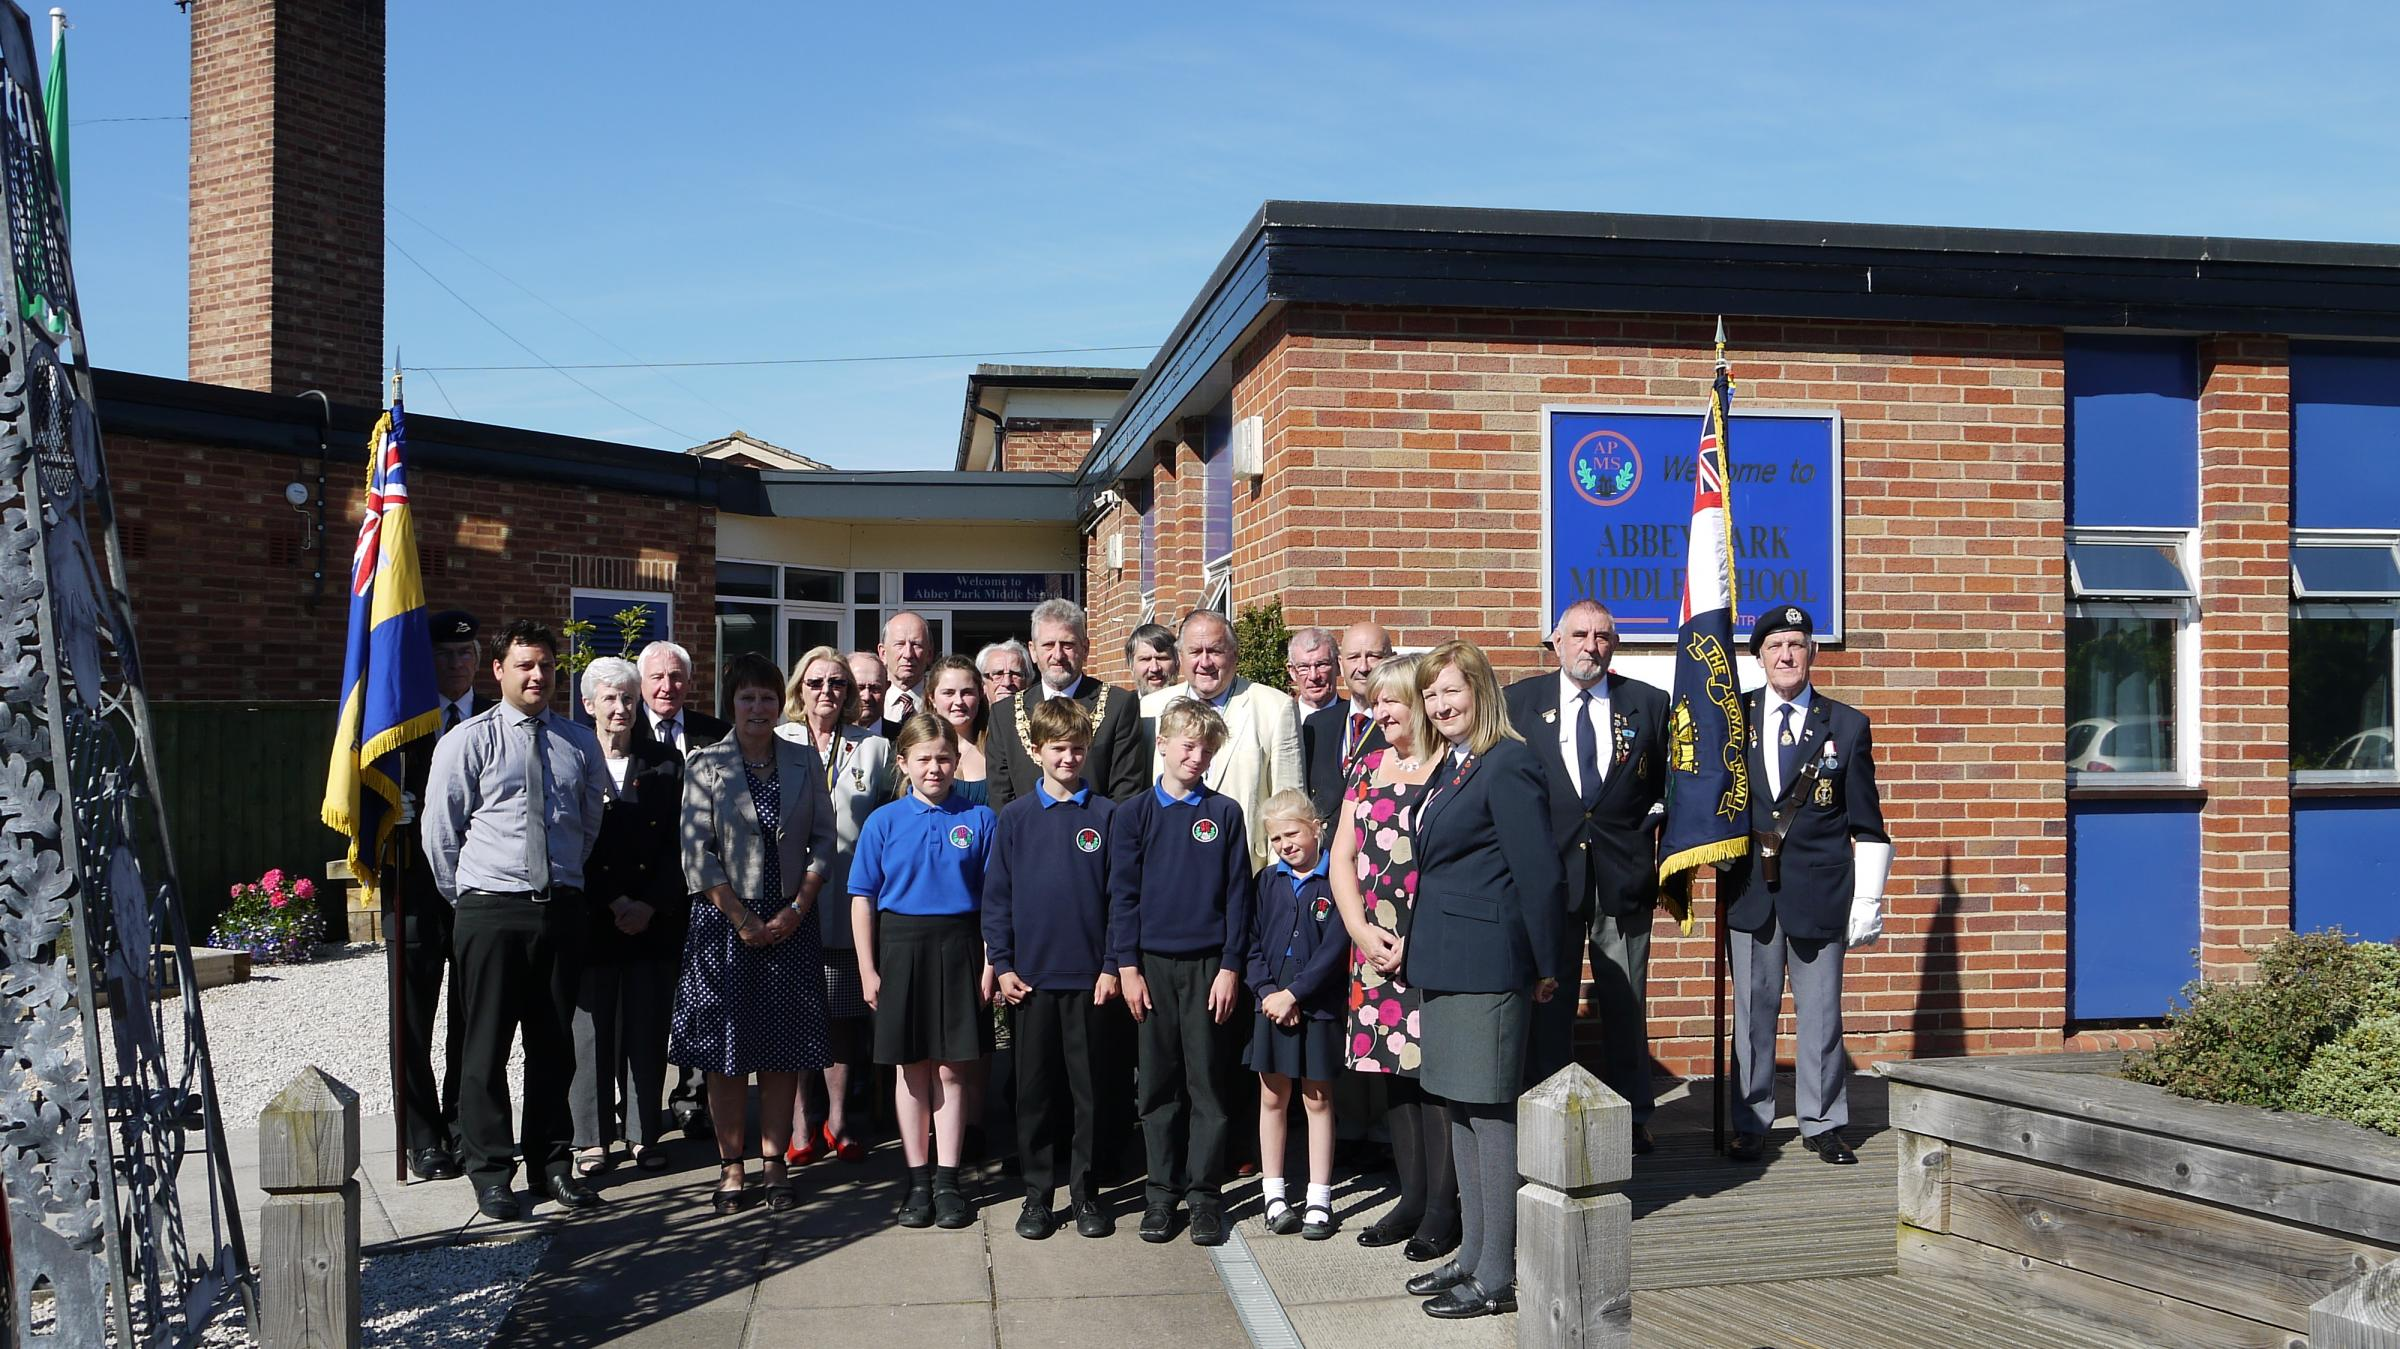 Trudy Burge (front right) at Abbey Park Middle School earlier this month (July) marking the centenary with children and veterans from the Pershore & District Branch Royal British Legion & Royal Naval Association.